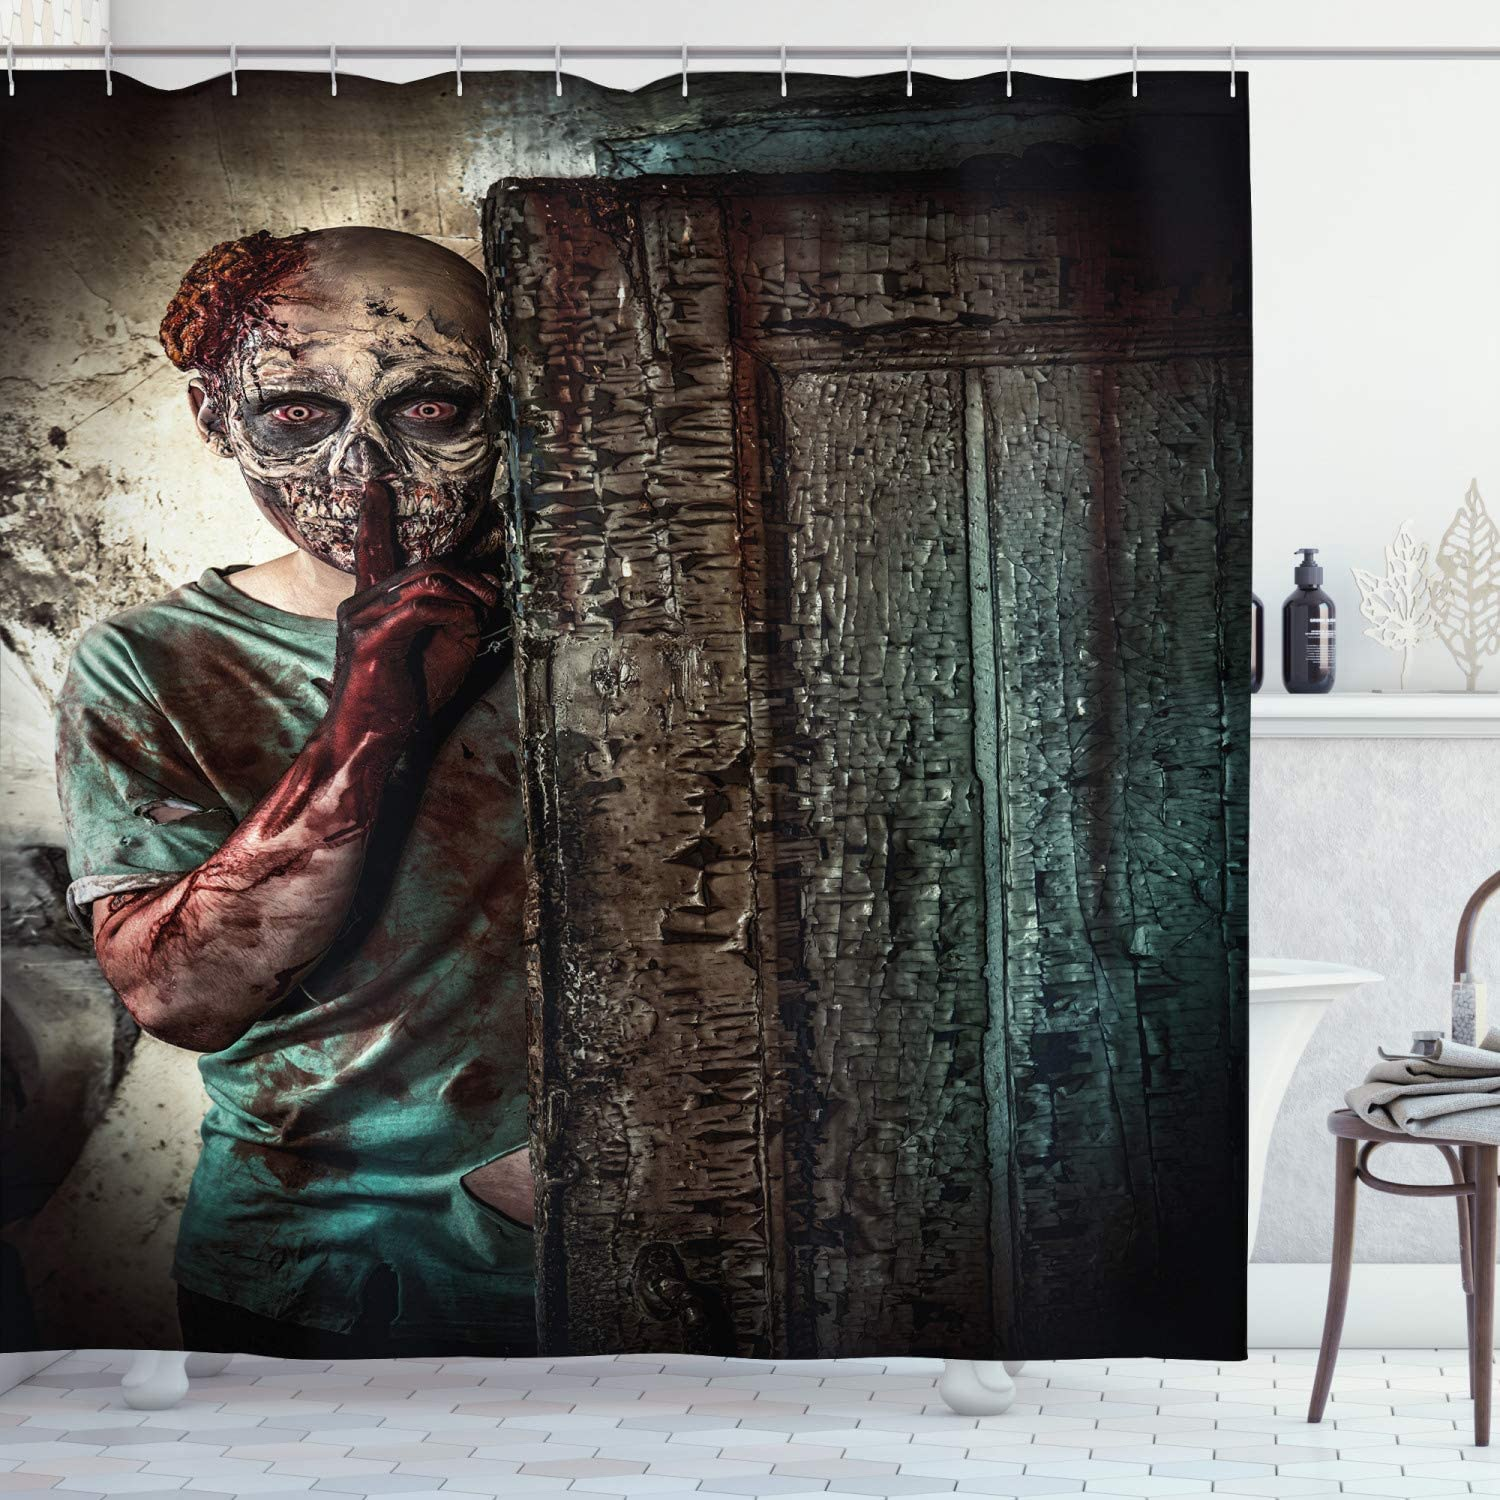 Ambesonne Zombie Shower Curtain, Monster Behind Door Looking with Evil Eyes Hell Nightmare Modern Print, Cloth Fabric Bathroom Decor Set with Hooks, 70